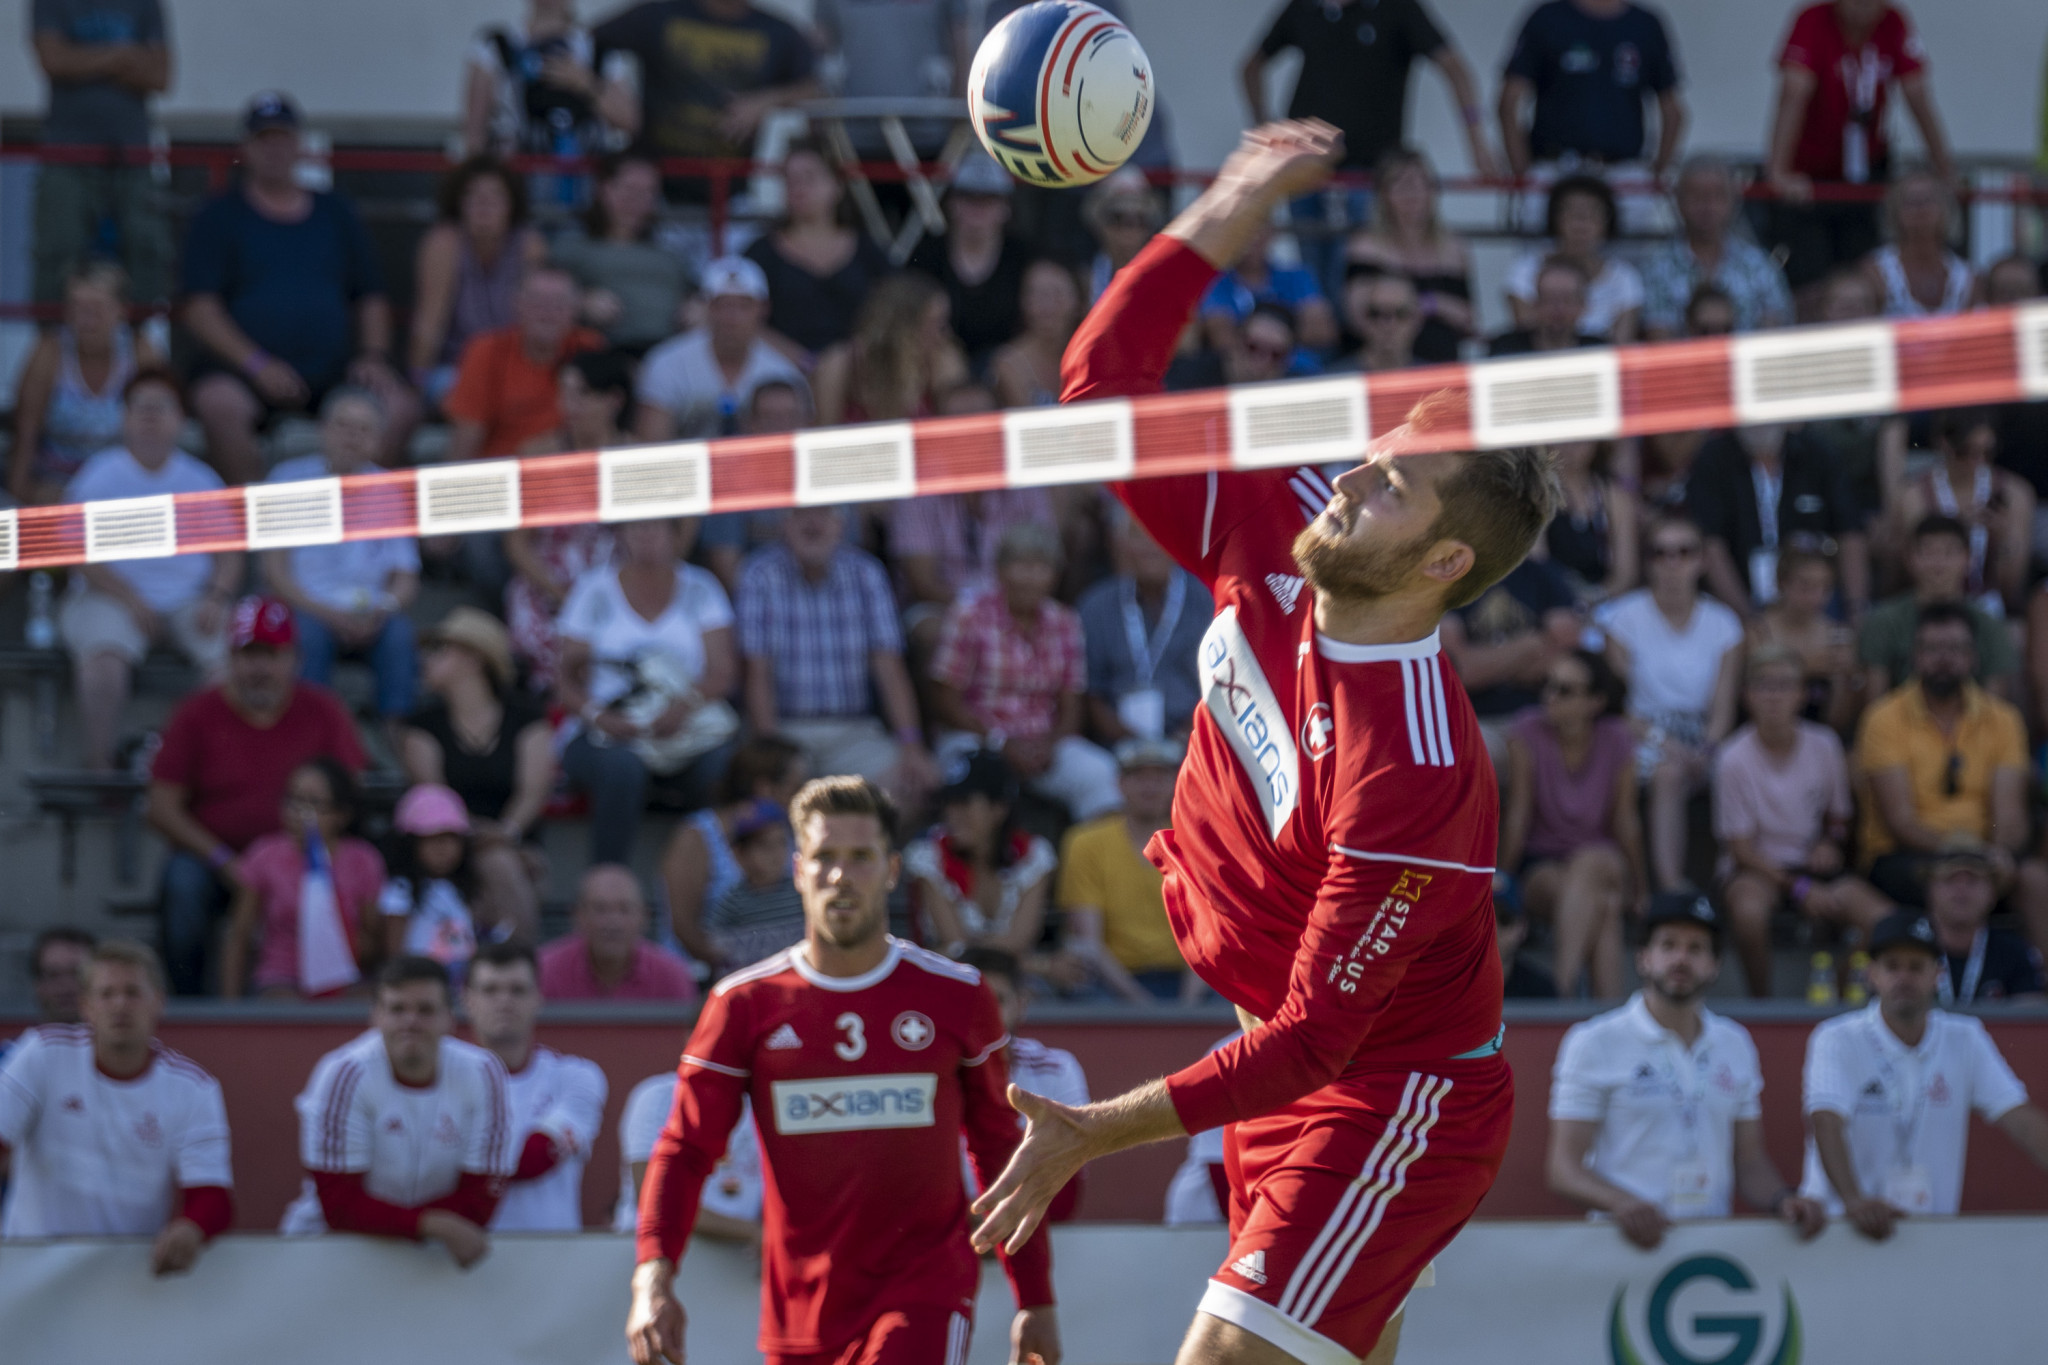 Hosts Switzerland won 3-0 against Chile as the International Fistball Association World Fistball Championships began in Winterthur ©IFA